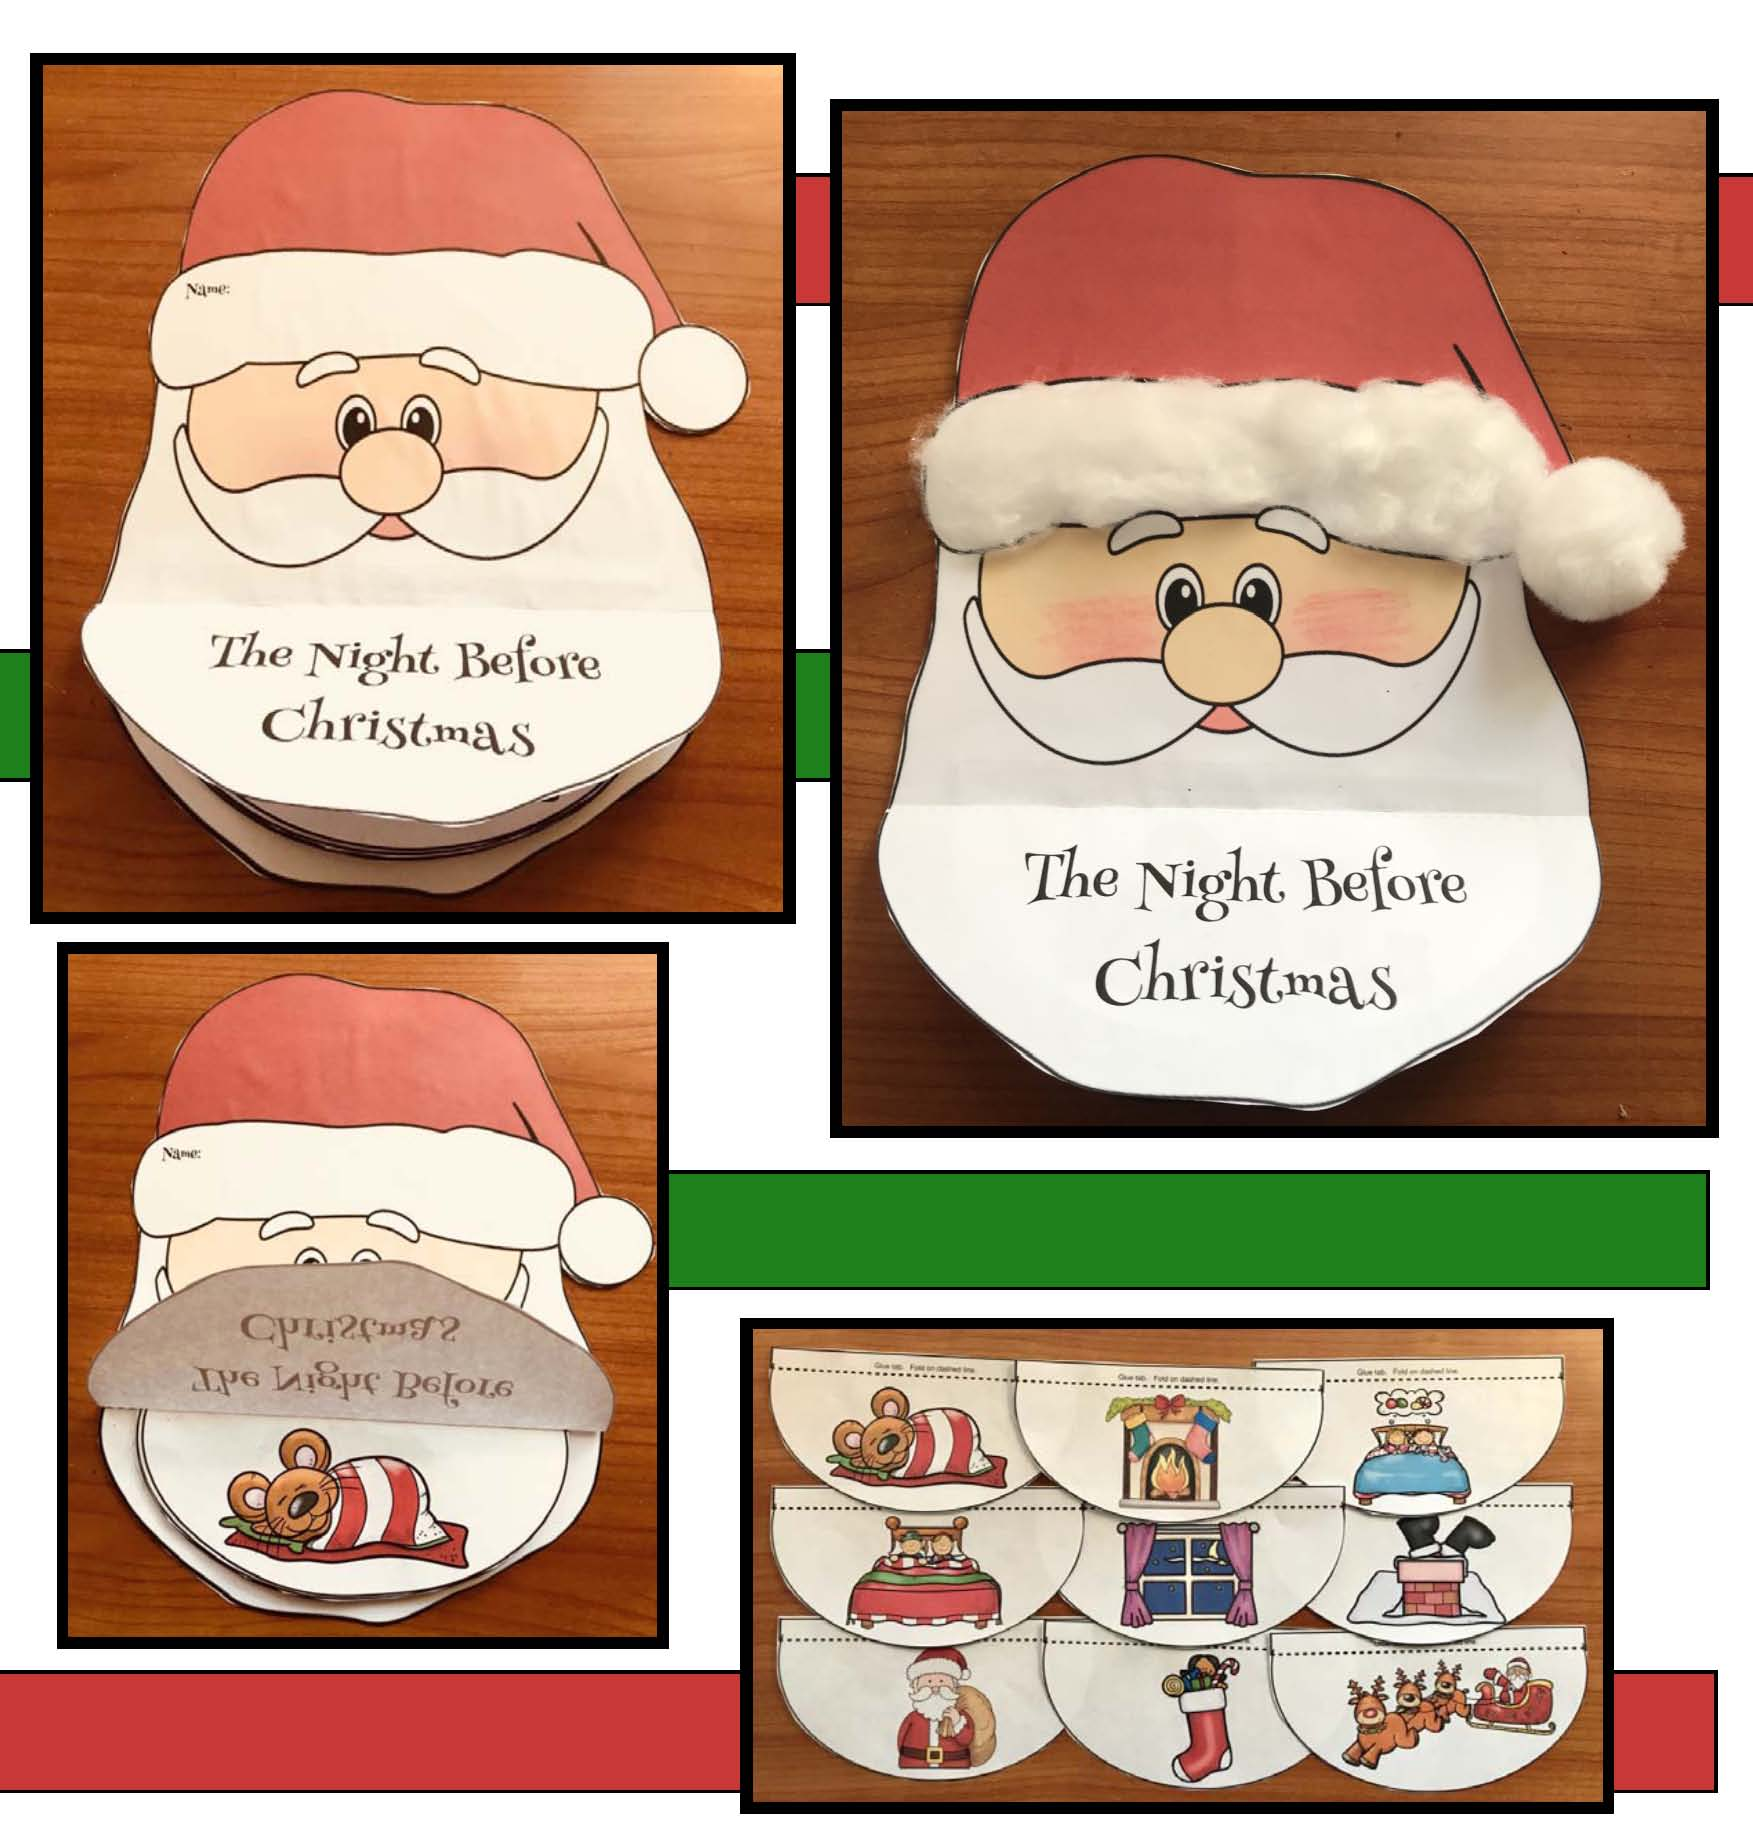 activities for the night before christmas, christmas crafts for kids, santa crafts, december literacy centers, december writing prompts, december bulletin boards, christmas cards for kids to make